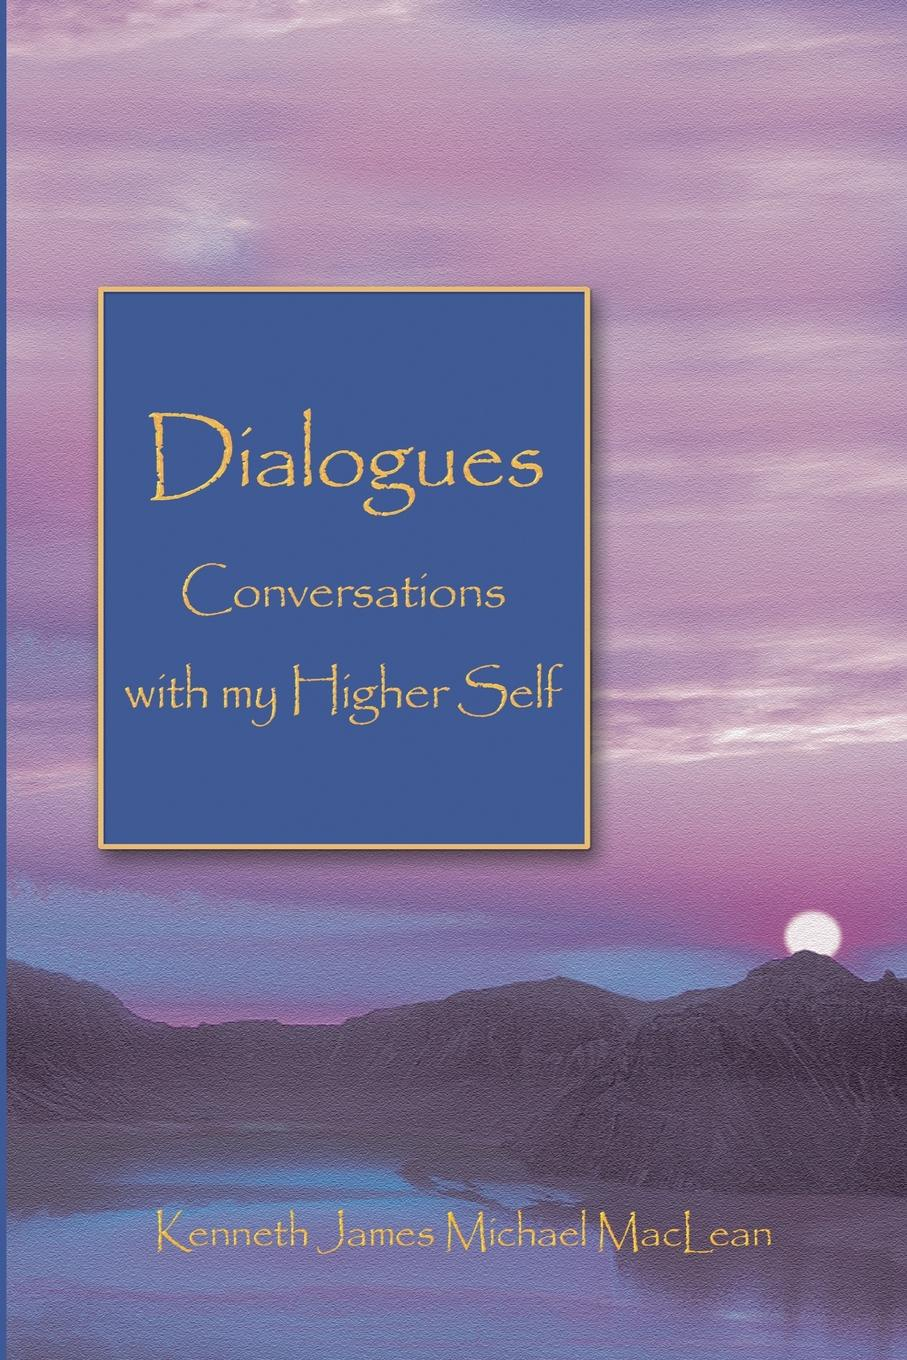 Kenneth James MacLean Dialogues Conversations with My Higher Self dr g alfred palmer purposeology the science of purpose series what s in a name the science of onomatology